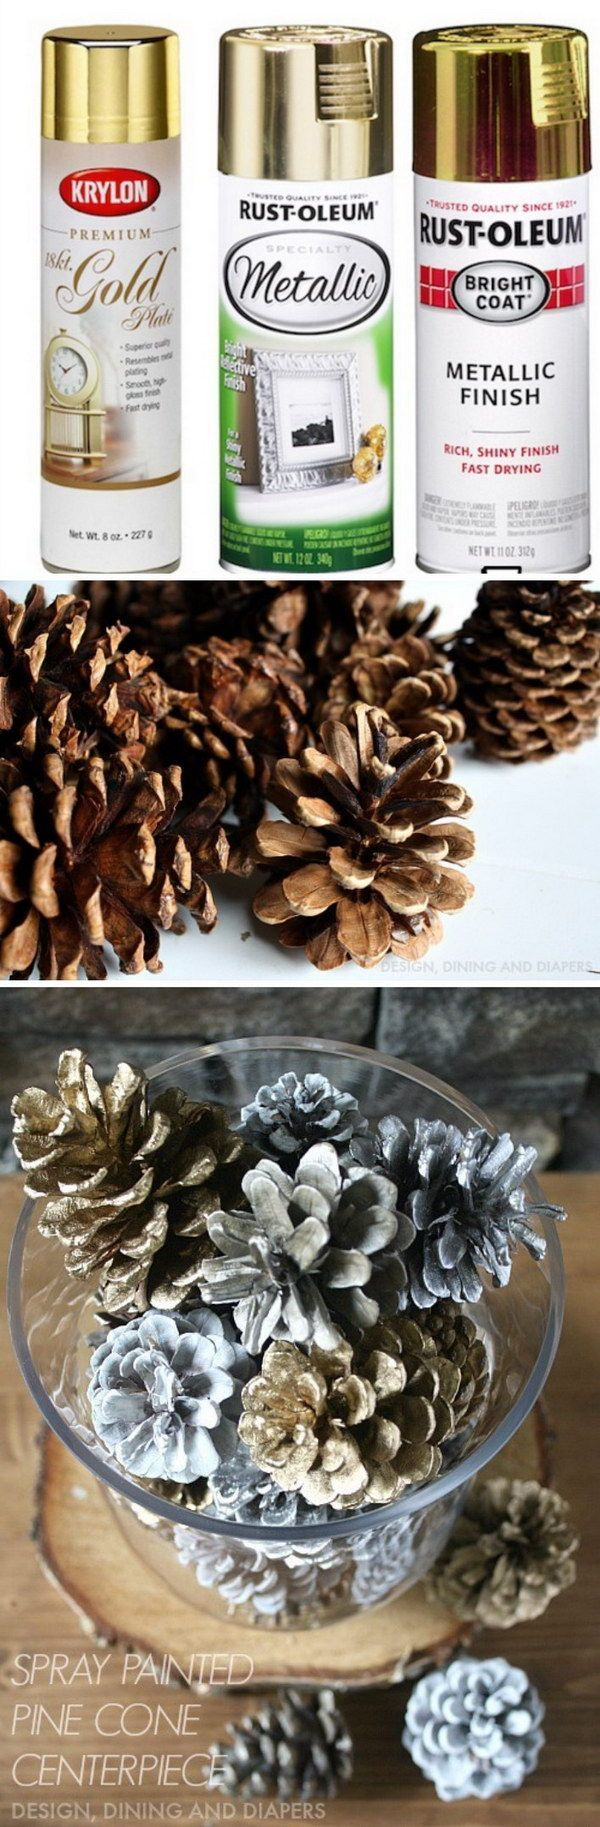 Pine Cone Wedding Table Decorations 17 Best Ideas About Pinecone Centerpiece On Pinterest Winter